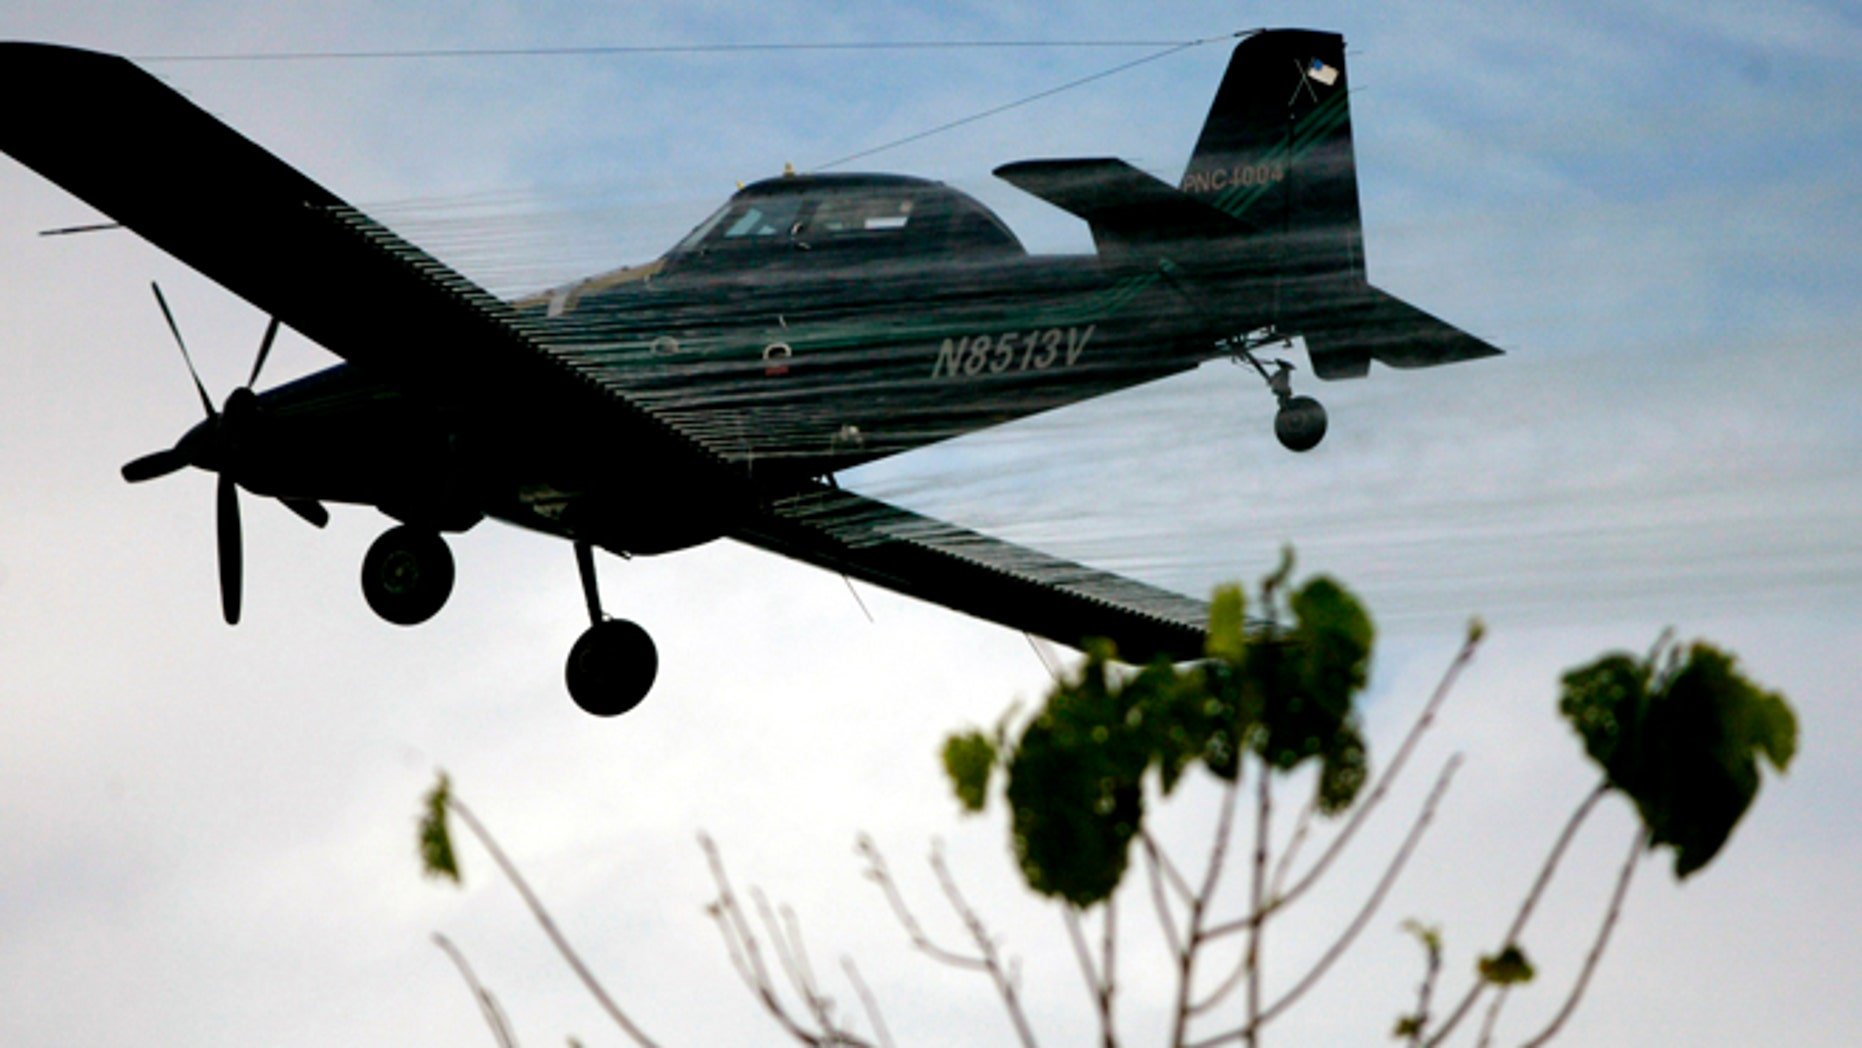 FILE - In this Dec. 15, 2006, file photo, a plane sprays coca fields in San Miguel, Colombia. The latest survey by the U.S., released this on May 2015, show that areas under coca cultivation in Colombia shot up 39 percent last year to 112,000 hectares (about 276,000 acres). The White Houses Drug Czar attributed the boom to an increase in crop spraying off-limit areas like Paramillo, one of the countrys 59 national parks and conservation areas where spraying is banned. (AP Photo/William Fernando Martinez, File)